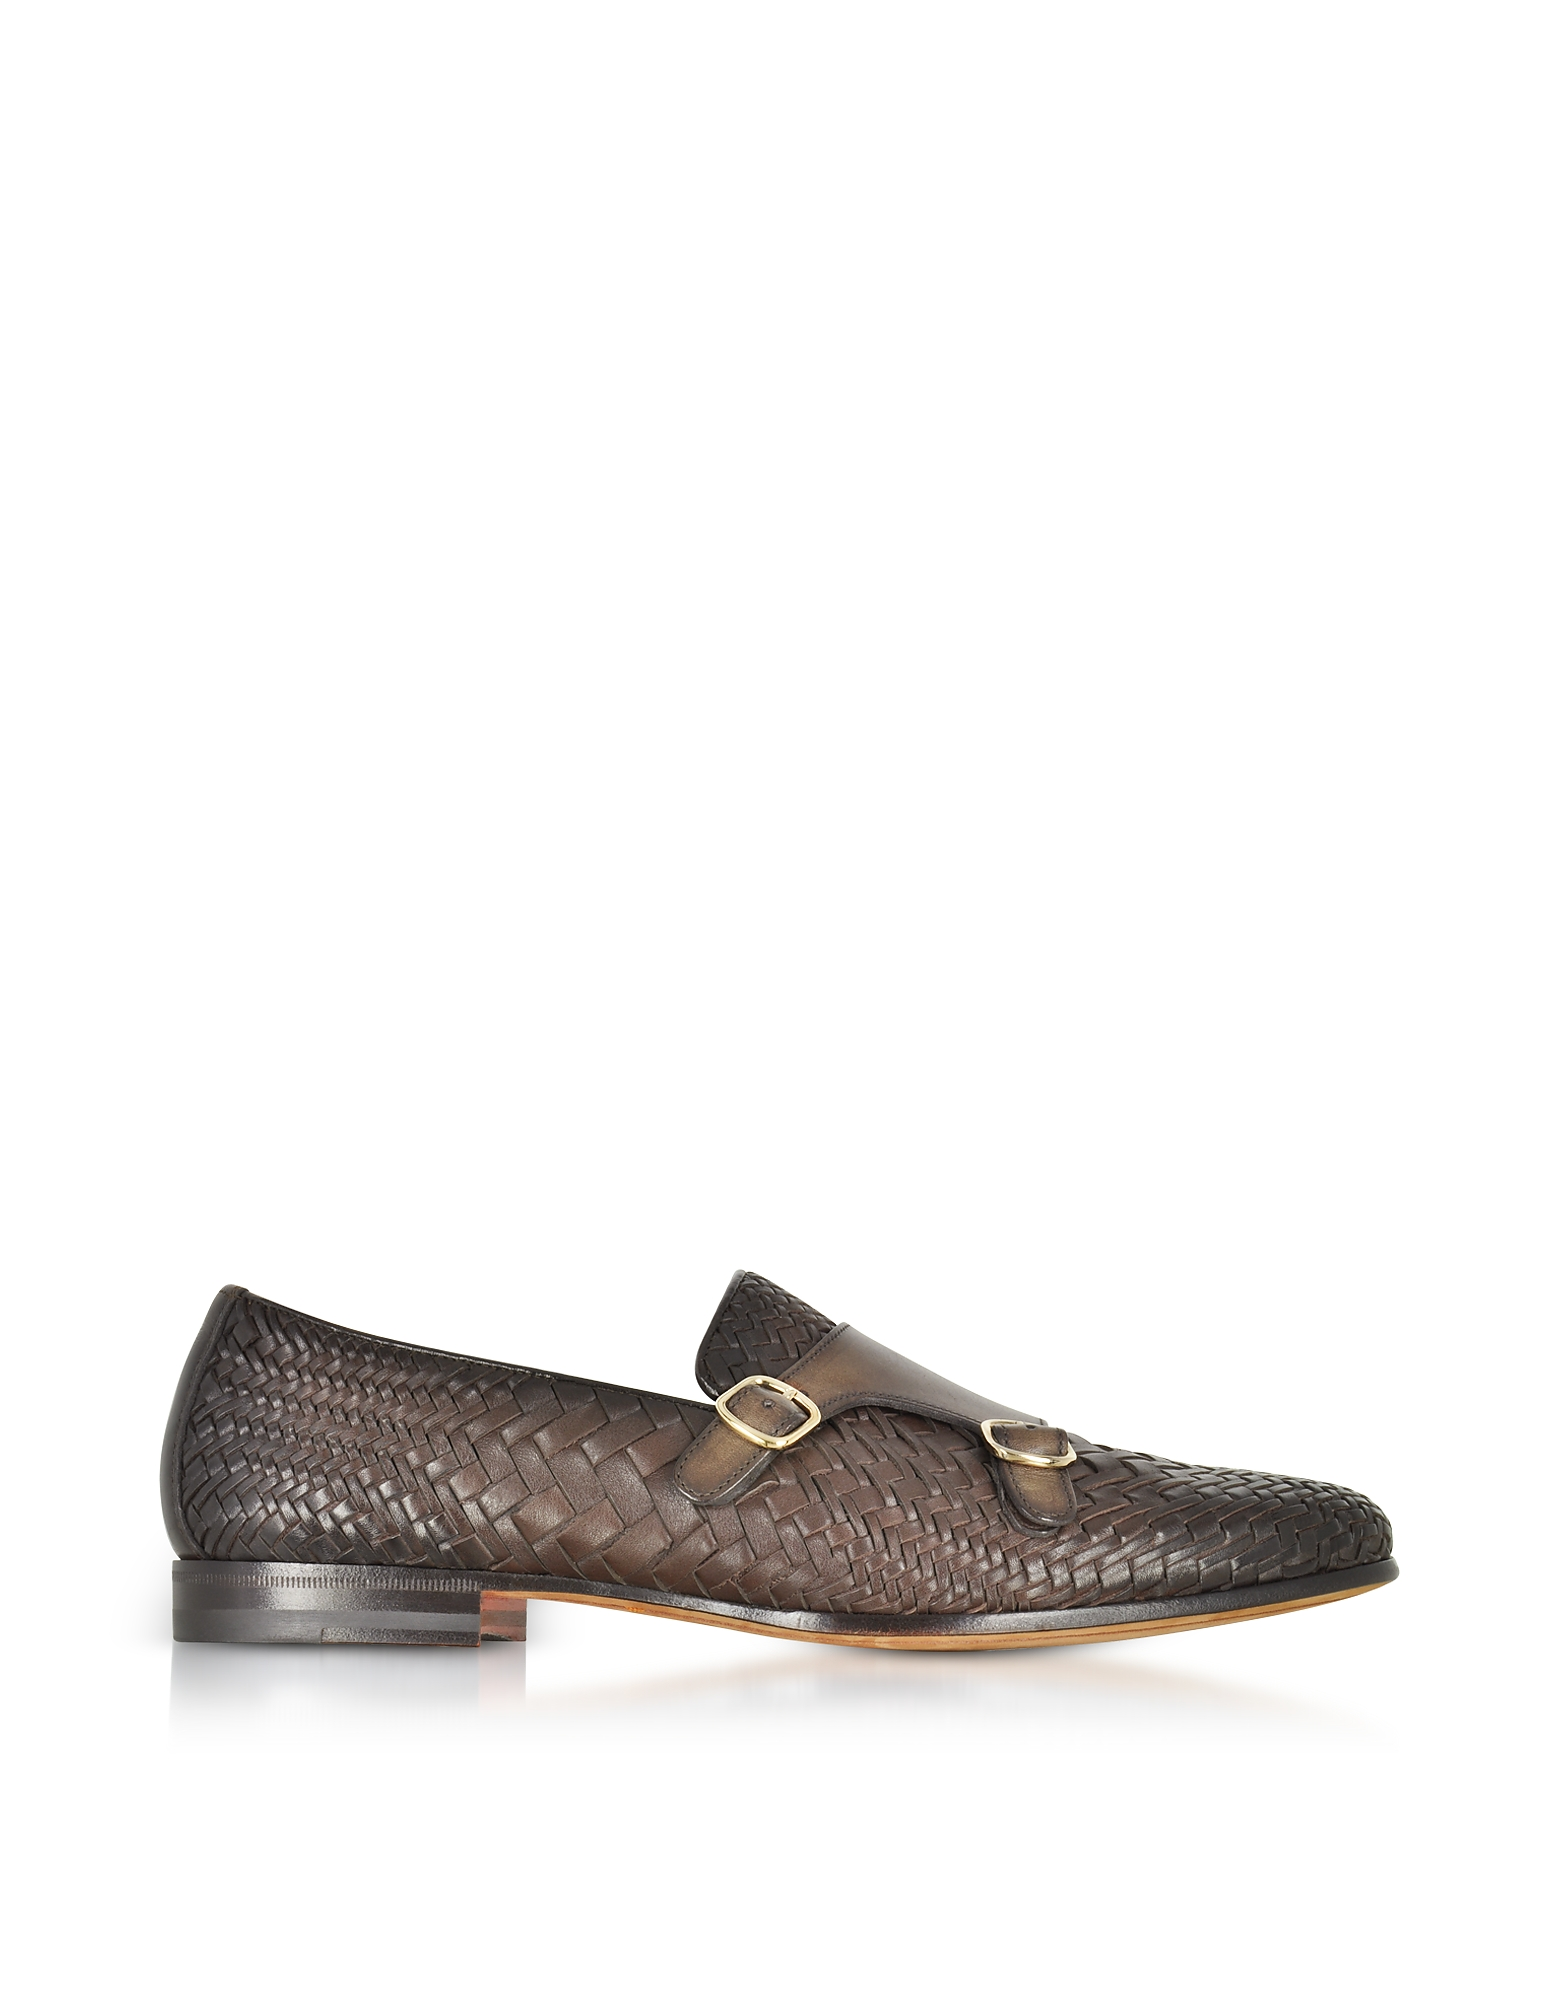 Santoni Shoes, Dark Brown Woven Leather Double Monk Strap Shoes